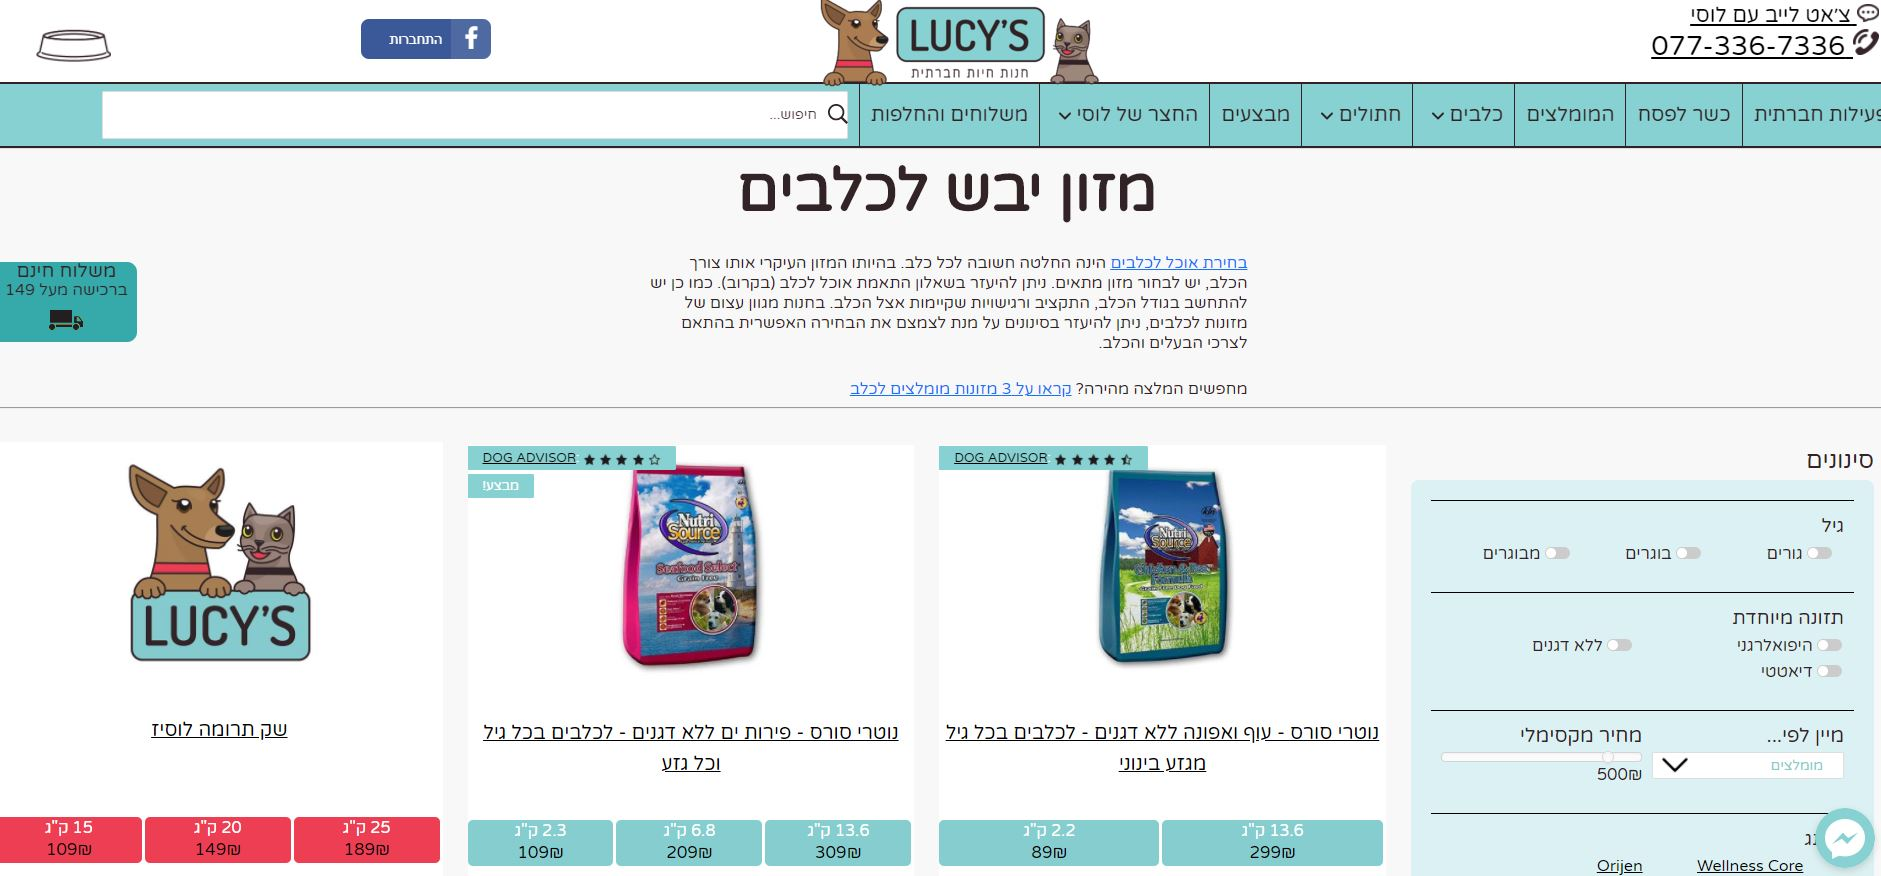 lucys.co.il